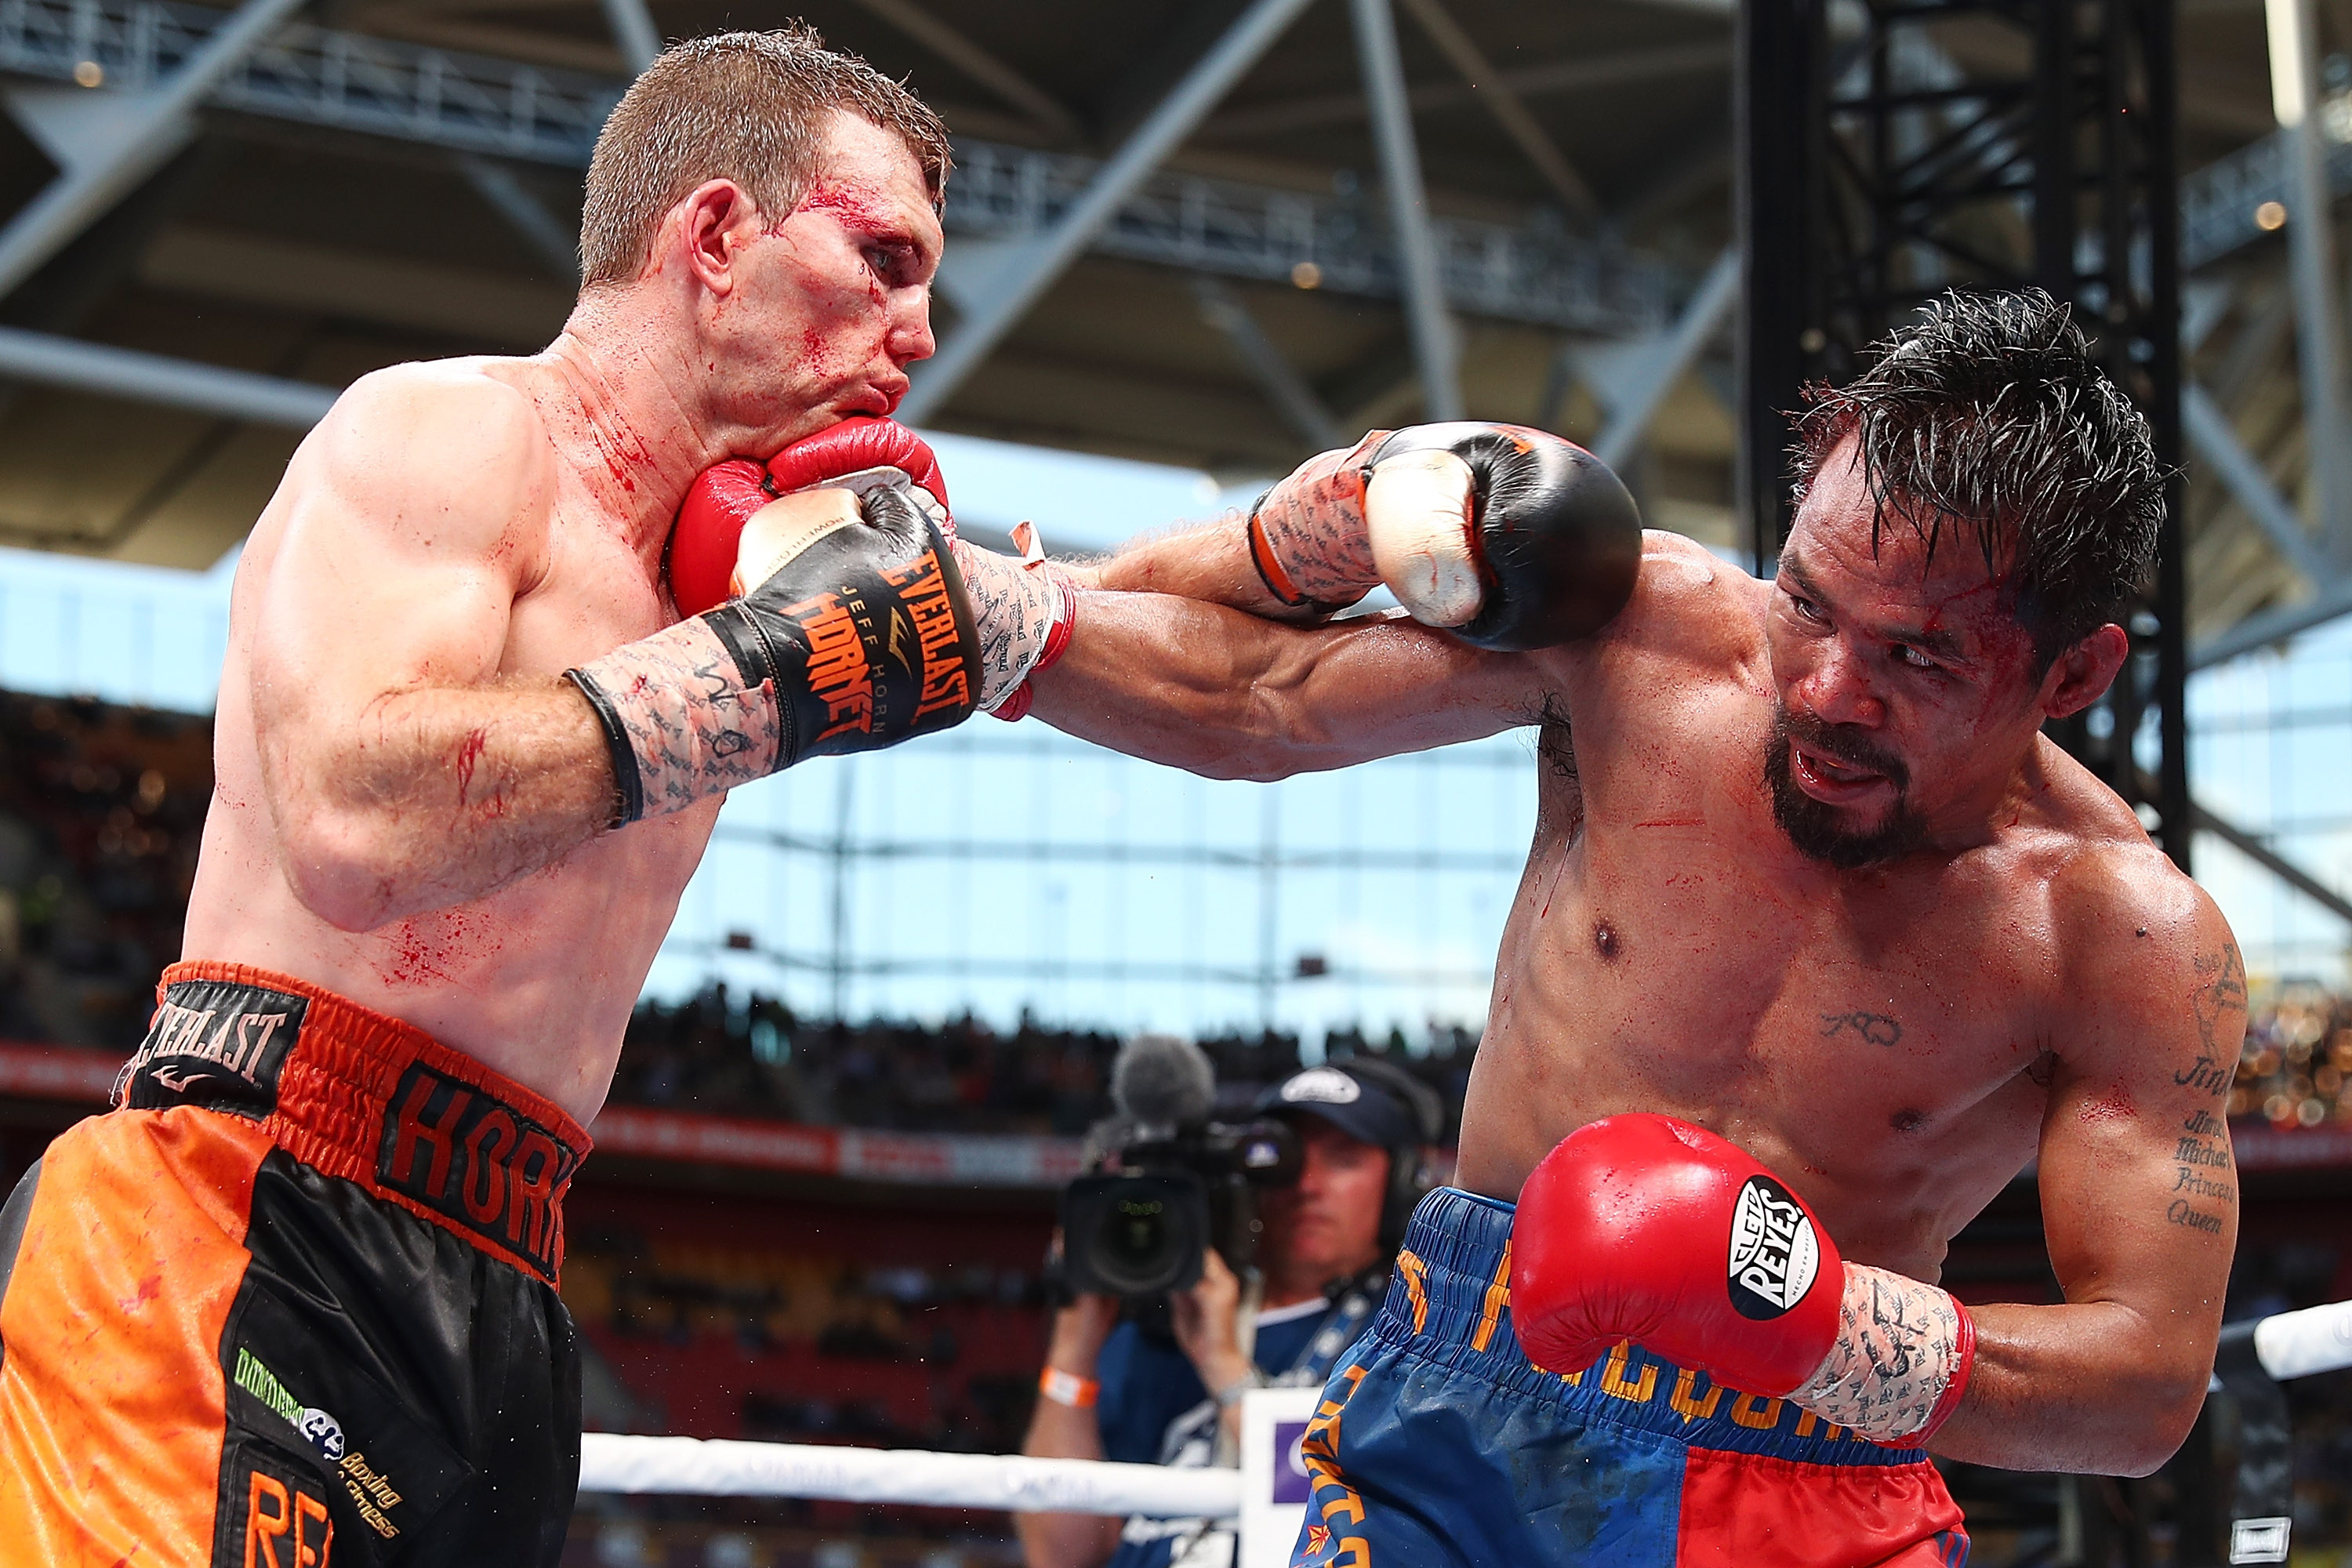 pacquiao vs horn results full analysis reaction and winners for